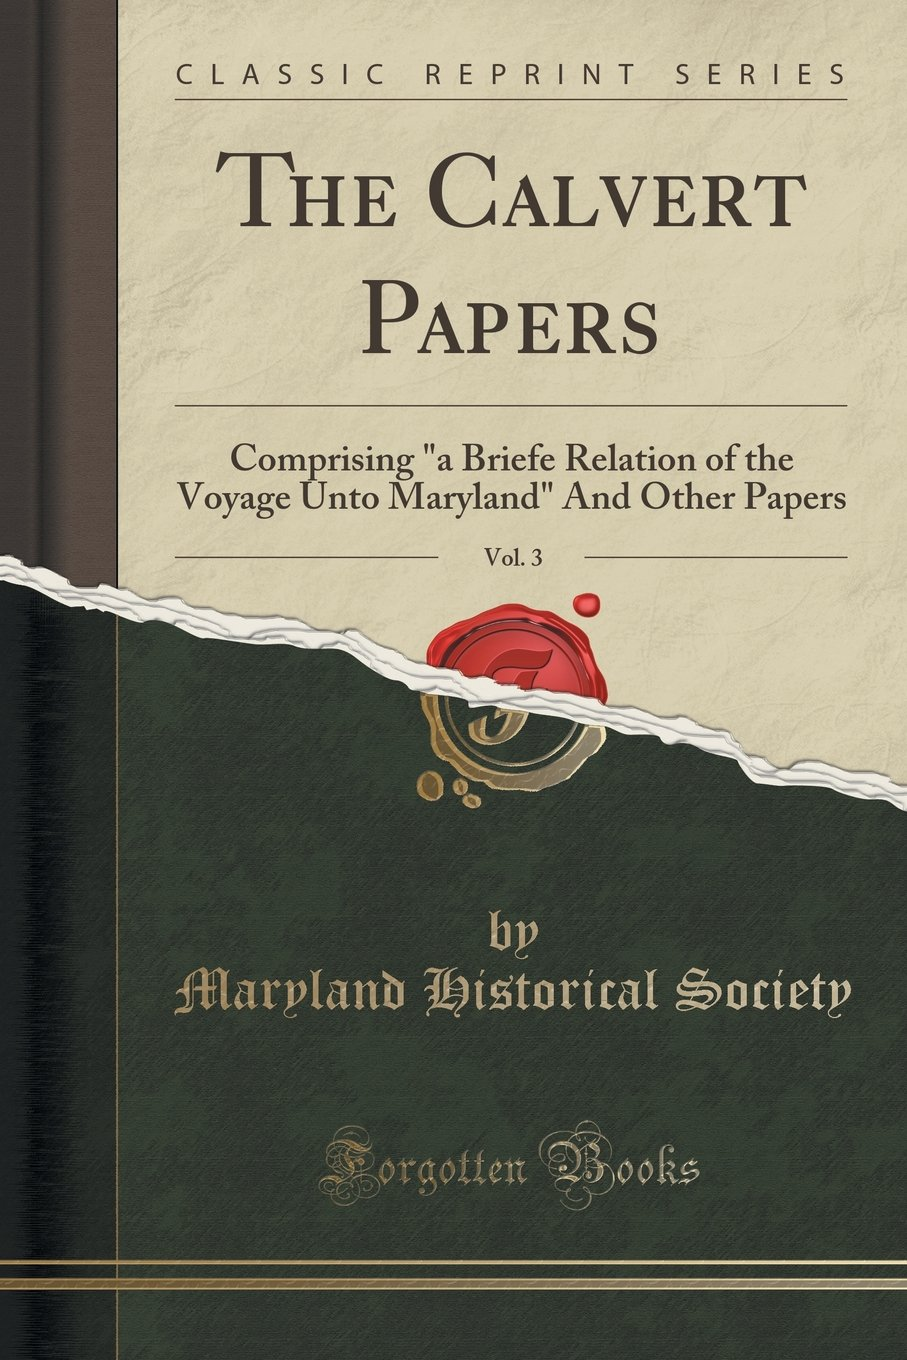 Download The Calvert Papers, Vol. 3: Comprising a Briefe Relation of the Voyage Unto Maryland and Other Papers (Classic Reprint) pdf